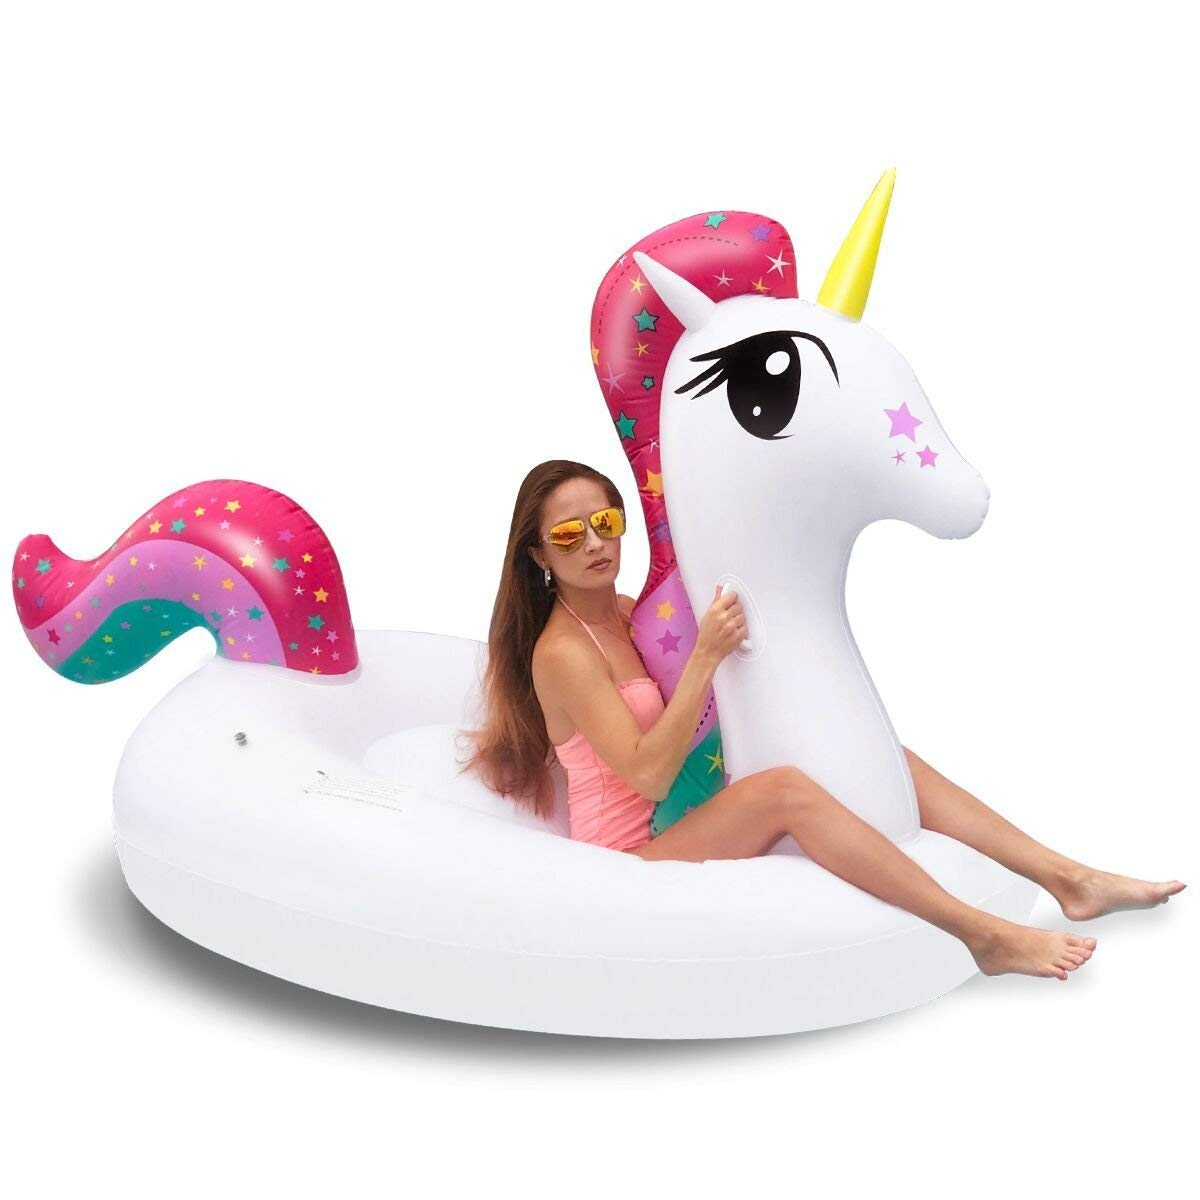 iBaseToy Pool Floats, Giant Inflatable Unicorn Pool Float Floatie Ride On with Rapid Valves Large Rideable Blow Up Summer Beach Outdoor Vacation Swimming Pool Party Lounge Raft for Adults Kids